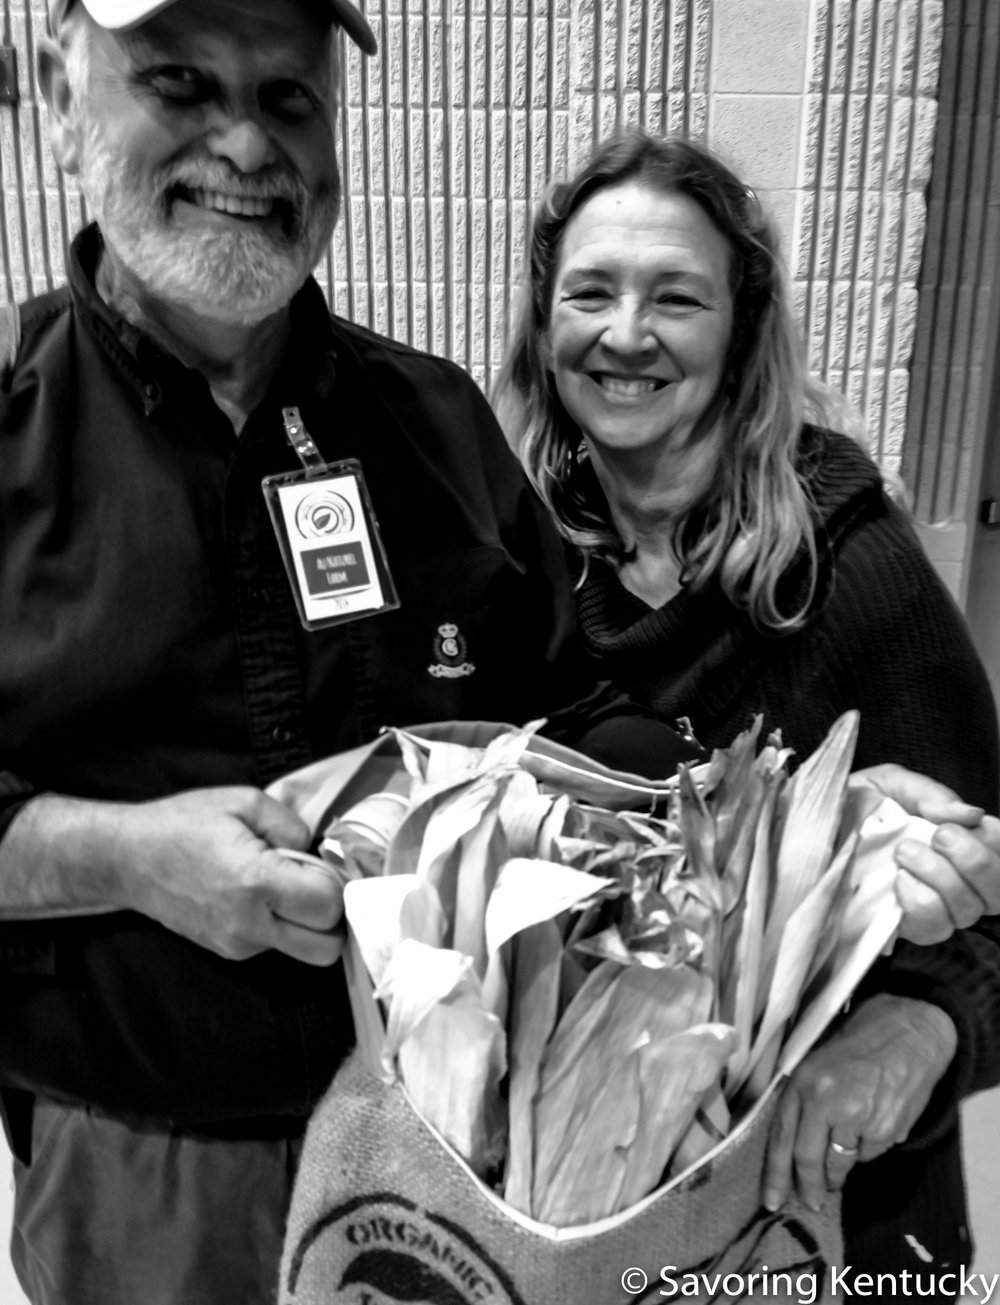 Paul and Alison Wiediger with heirloom corn at the Kentucky Green Living Fair, 2014.